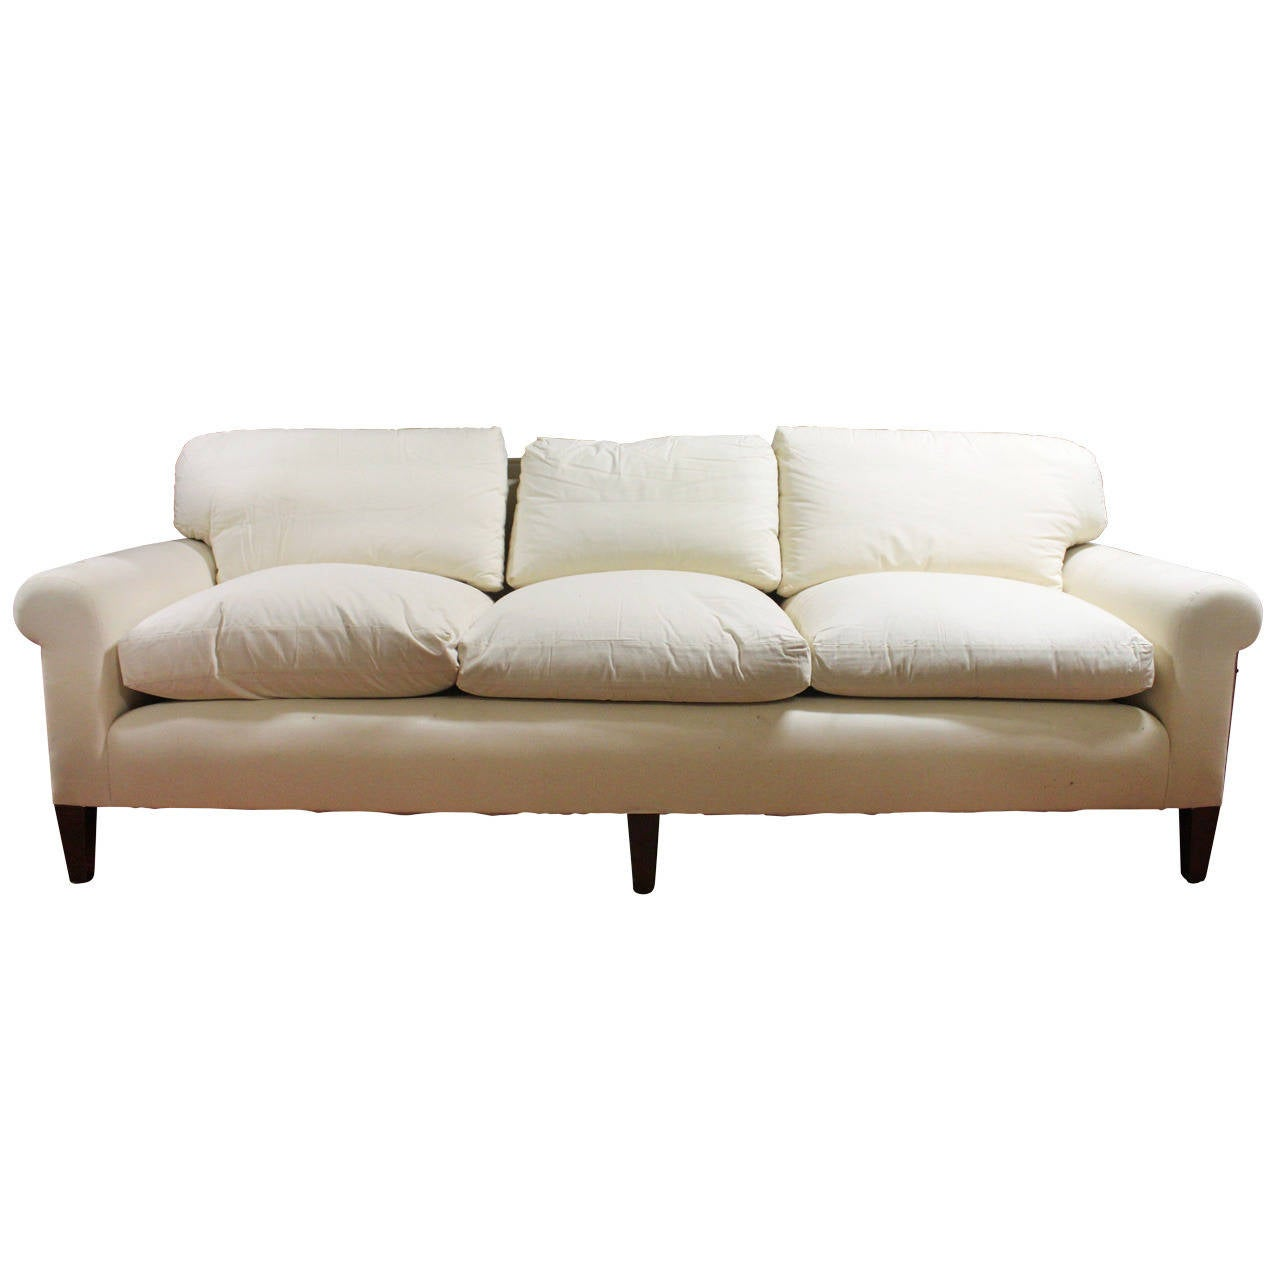 Elegant very comfortable fully refurbished sofa in muslin for Comfortable couches for sale